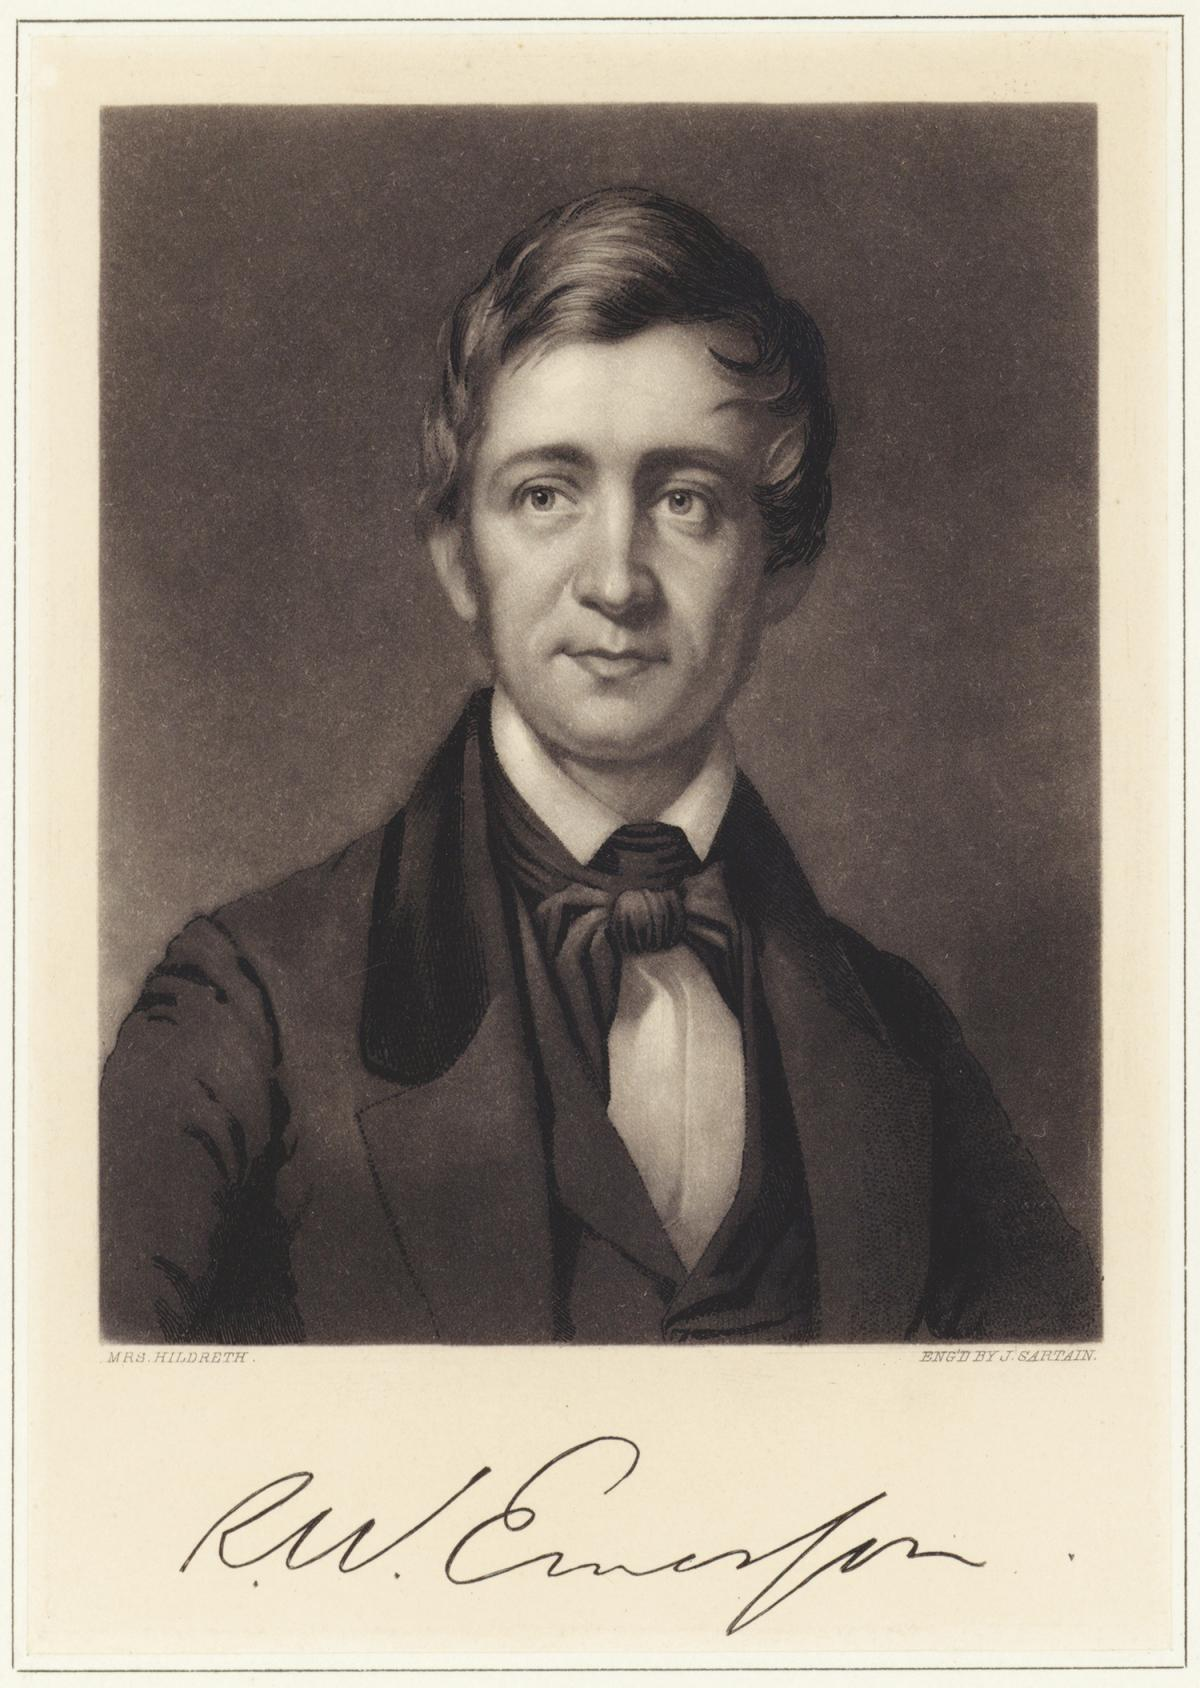 Lithograph of Ralph Waldo Emerson